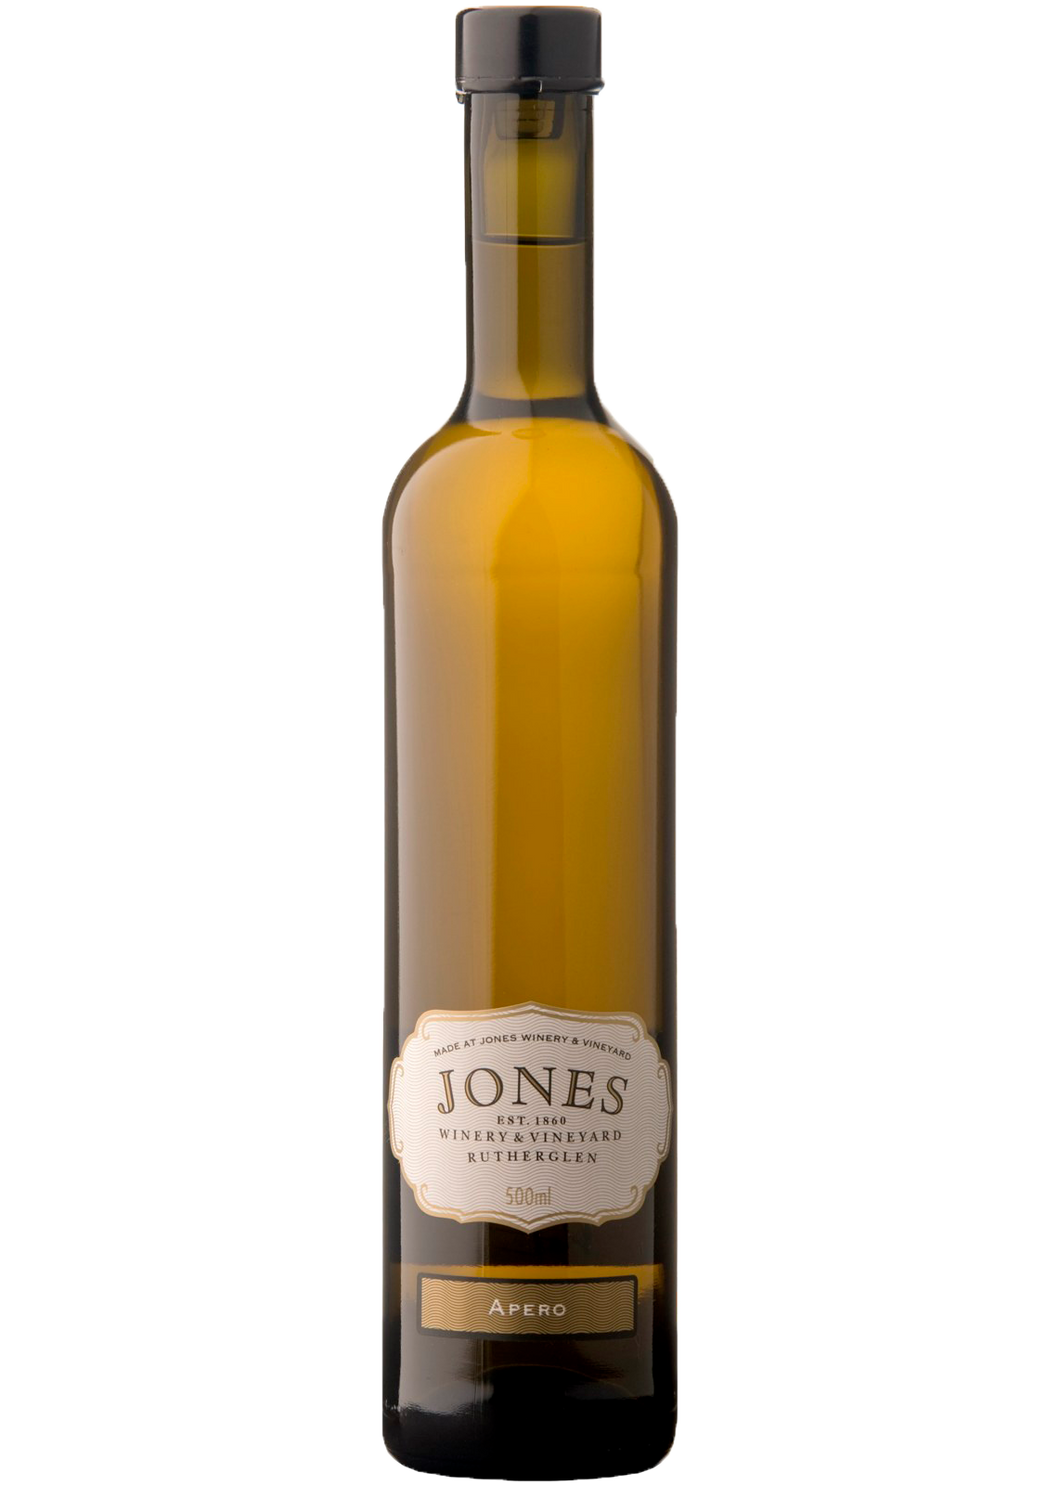 Jones Winery & Estate Apero NV